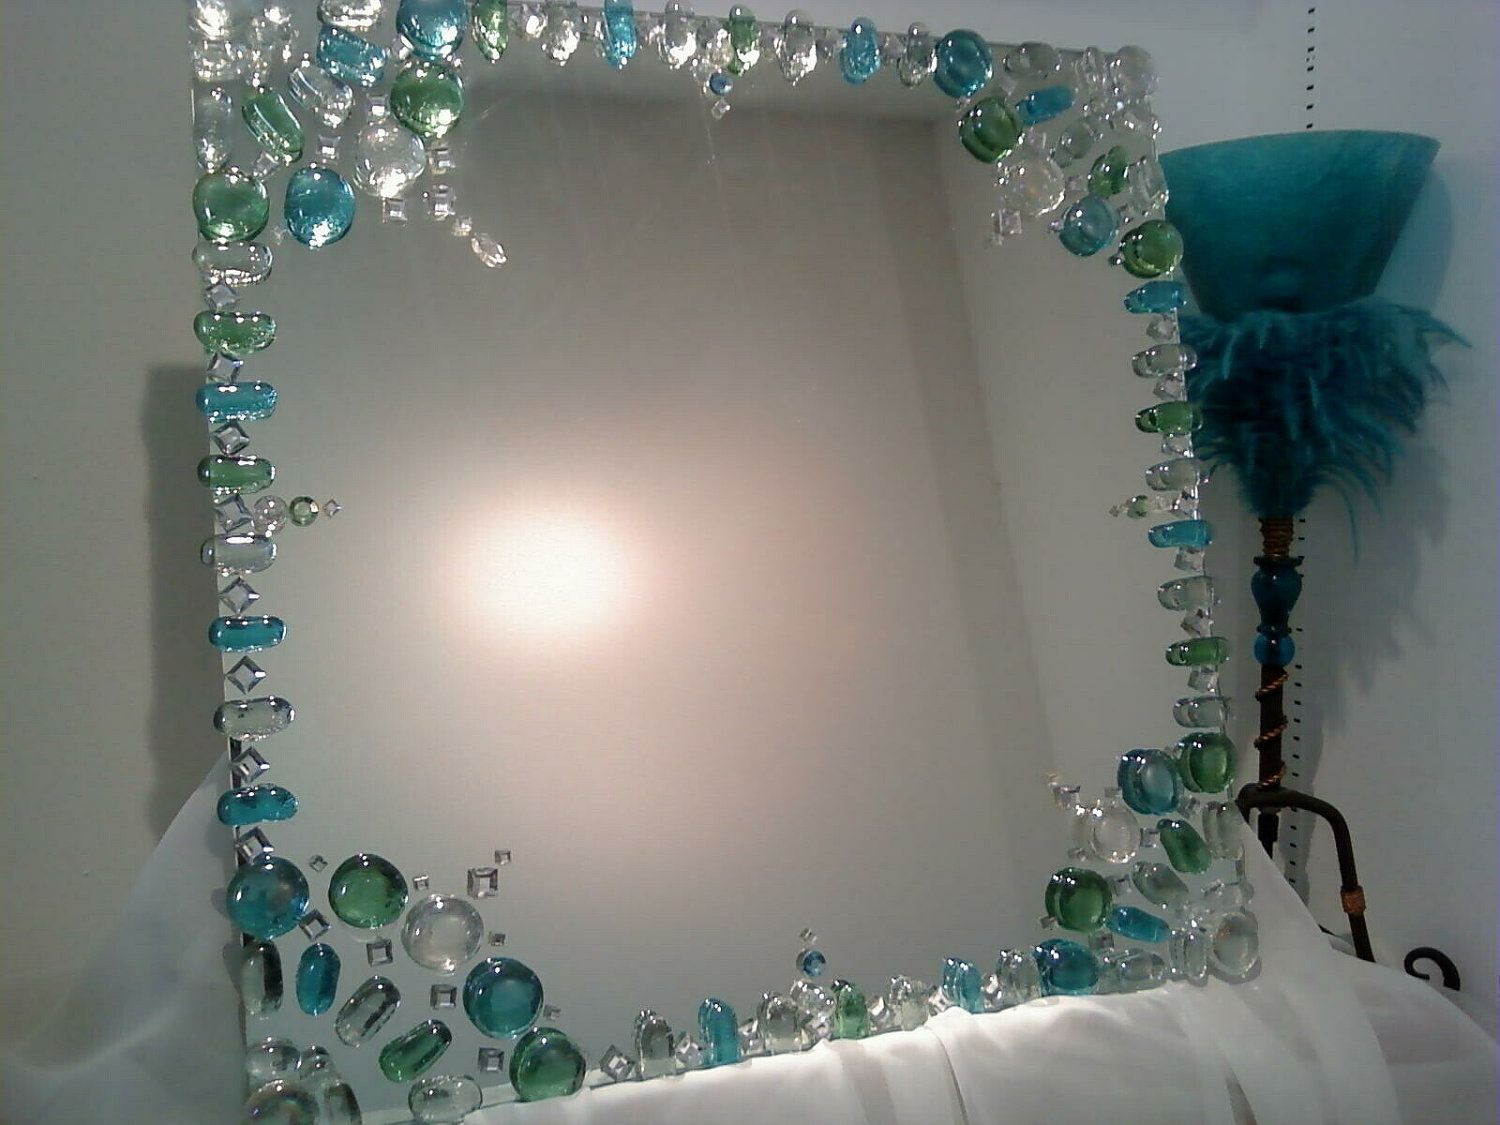 Mirror design idea decorating the edge with gems instead for Mirror on mirror decorating for bathroom